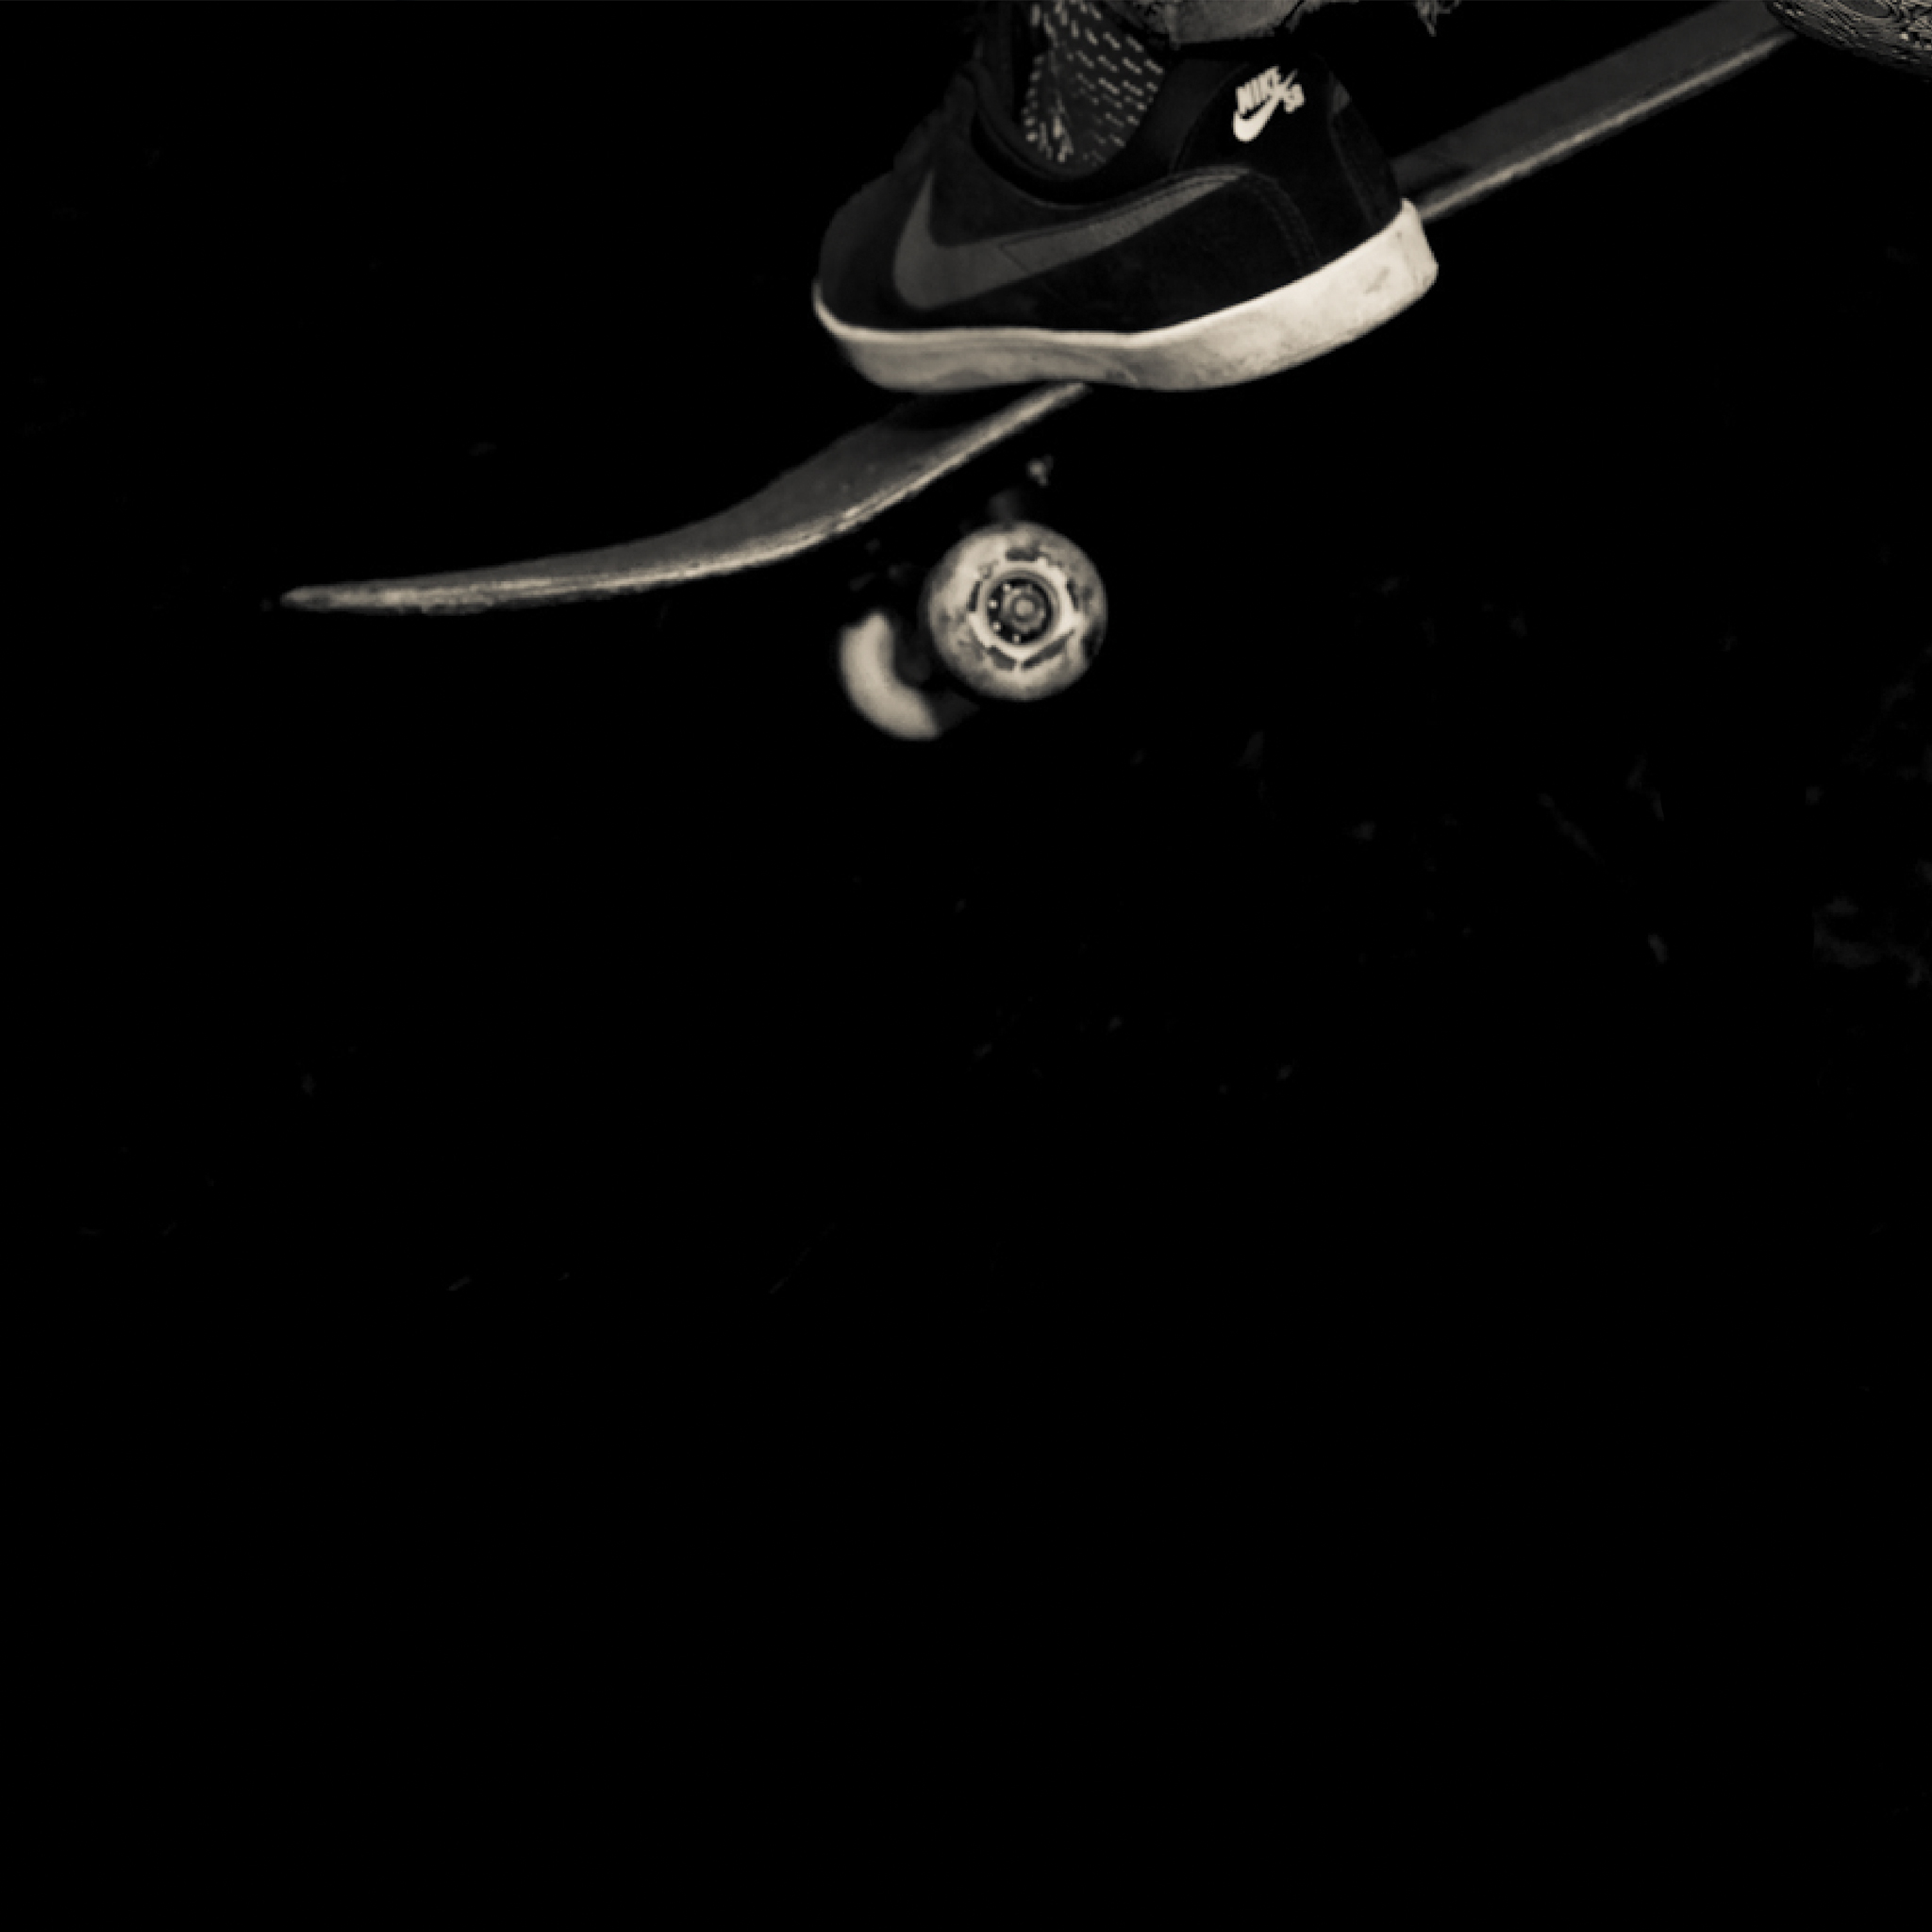 Nike Skateboard Wallpaper For IPhone X 8 7 6